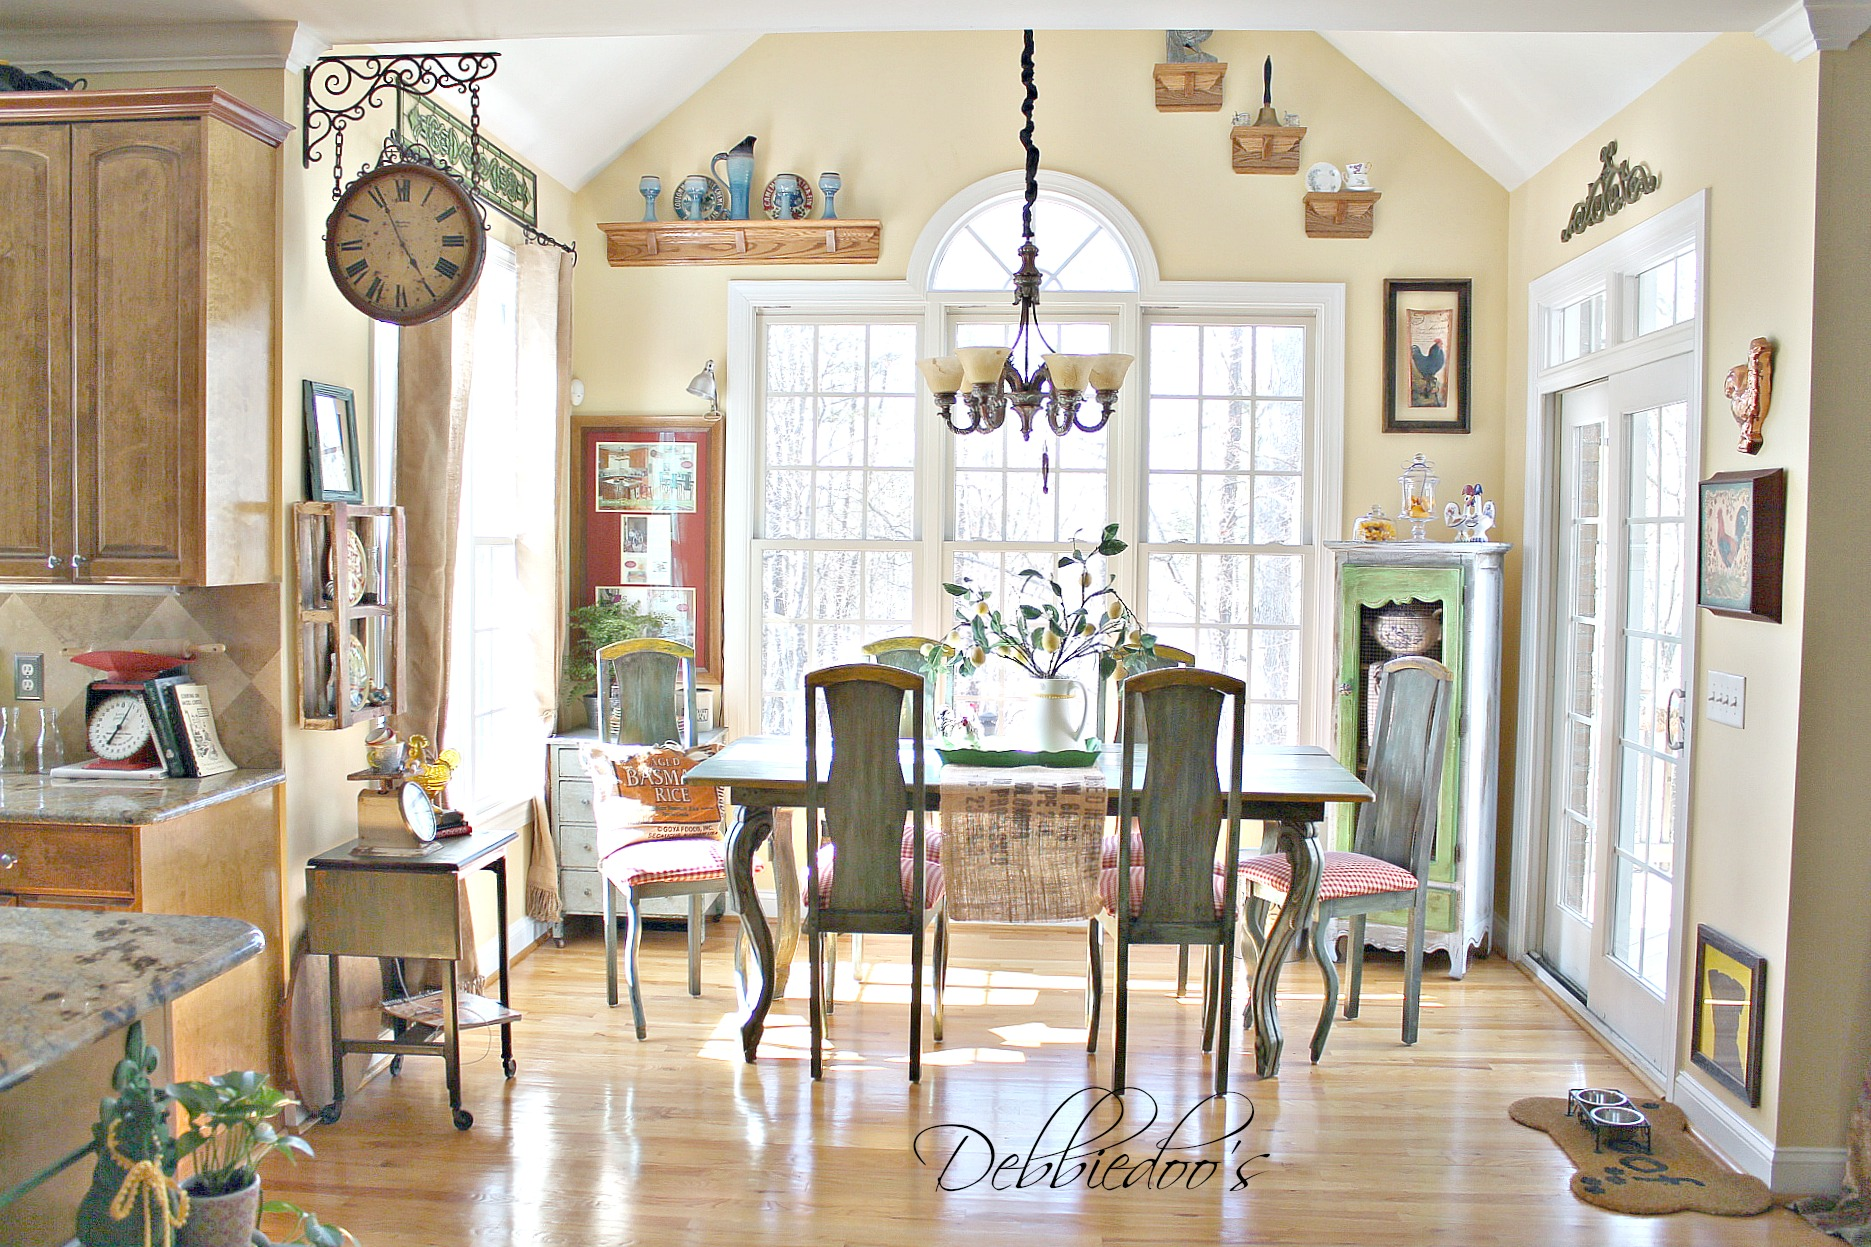 French Country Kitchen style Freshened up - Debbiedoo's